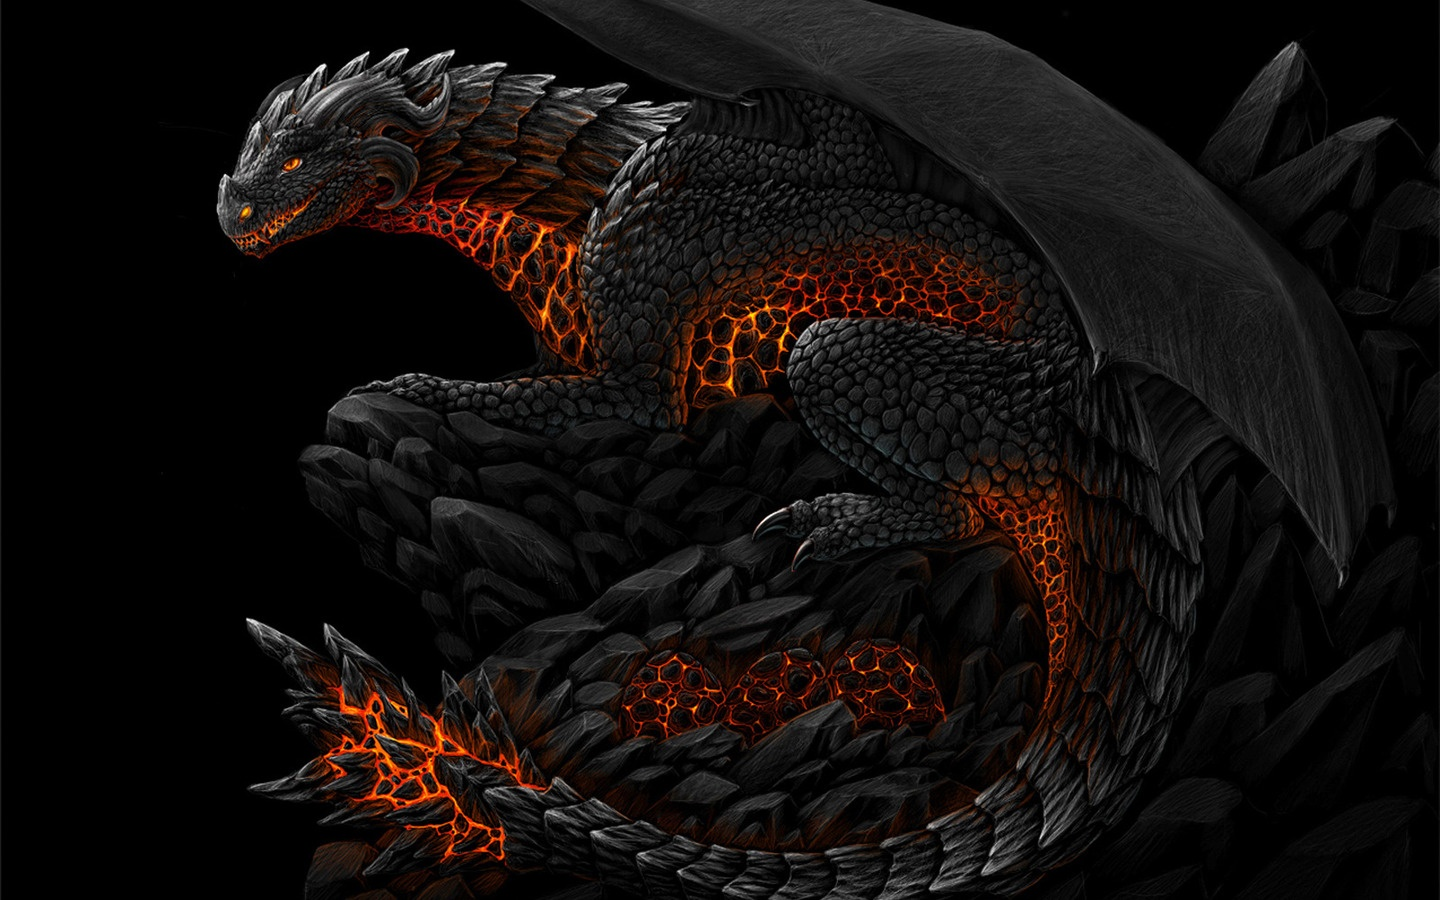 Fire Dragon Wallpapers HD Wallpapers Pics 1440x900